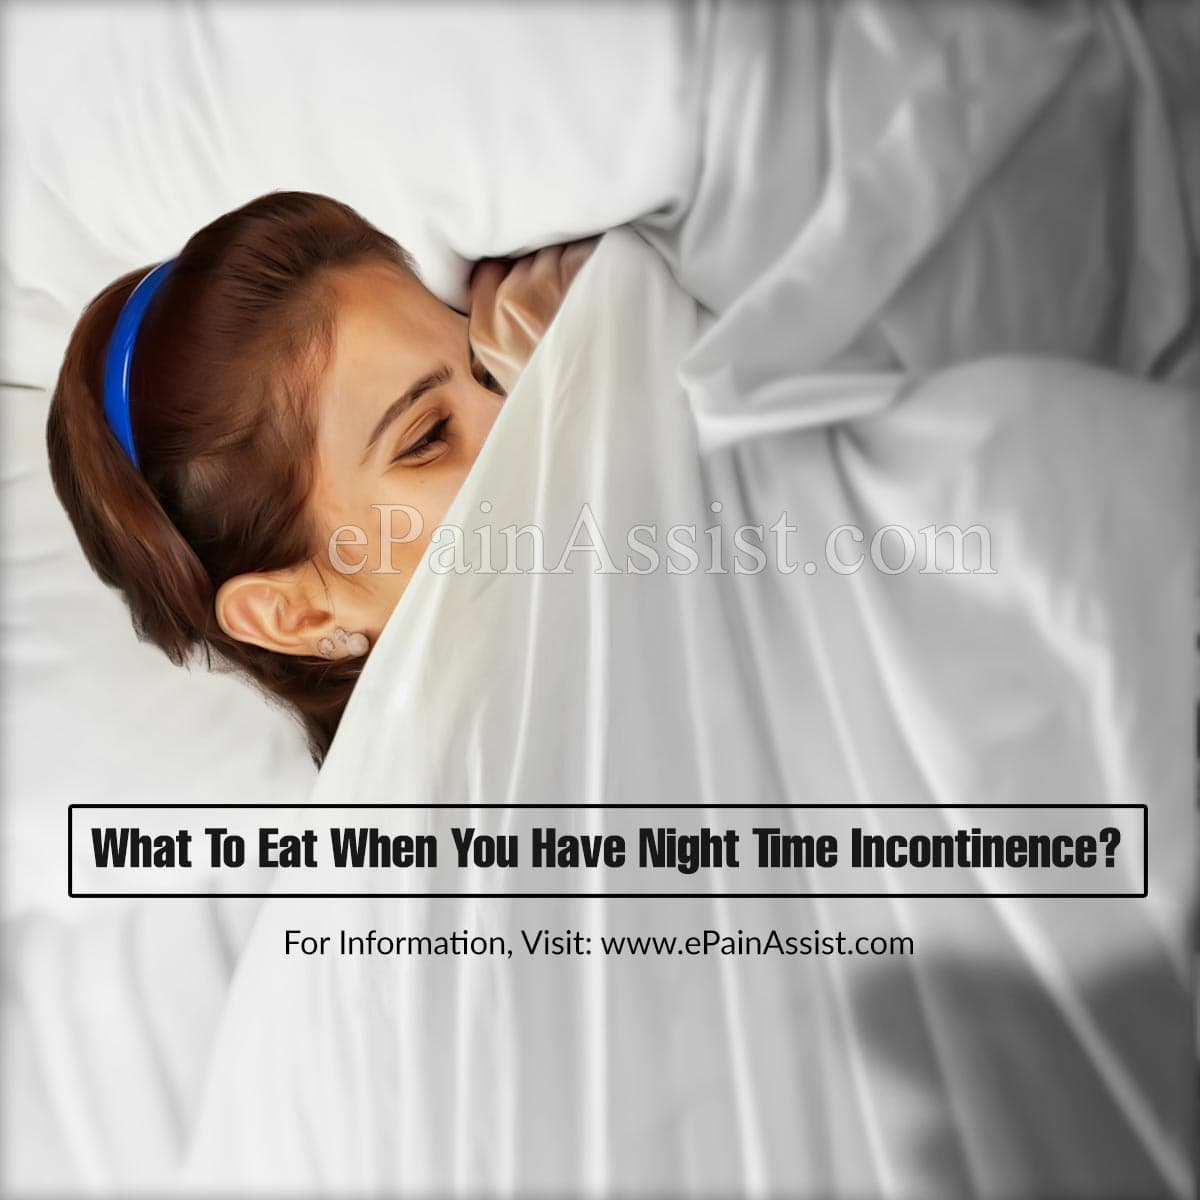 What To Eat When You Have Night Time Incontinence?